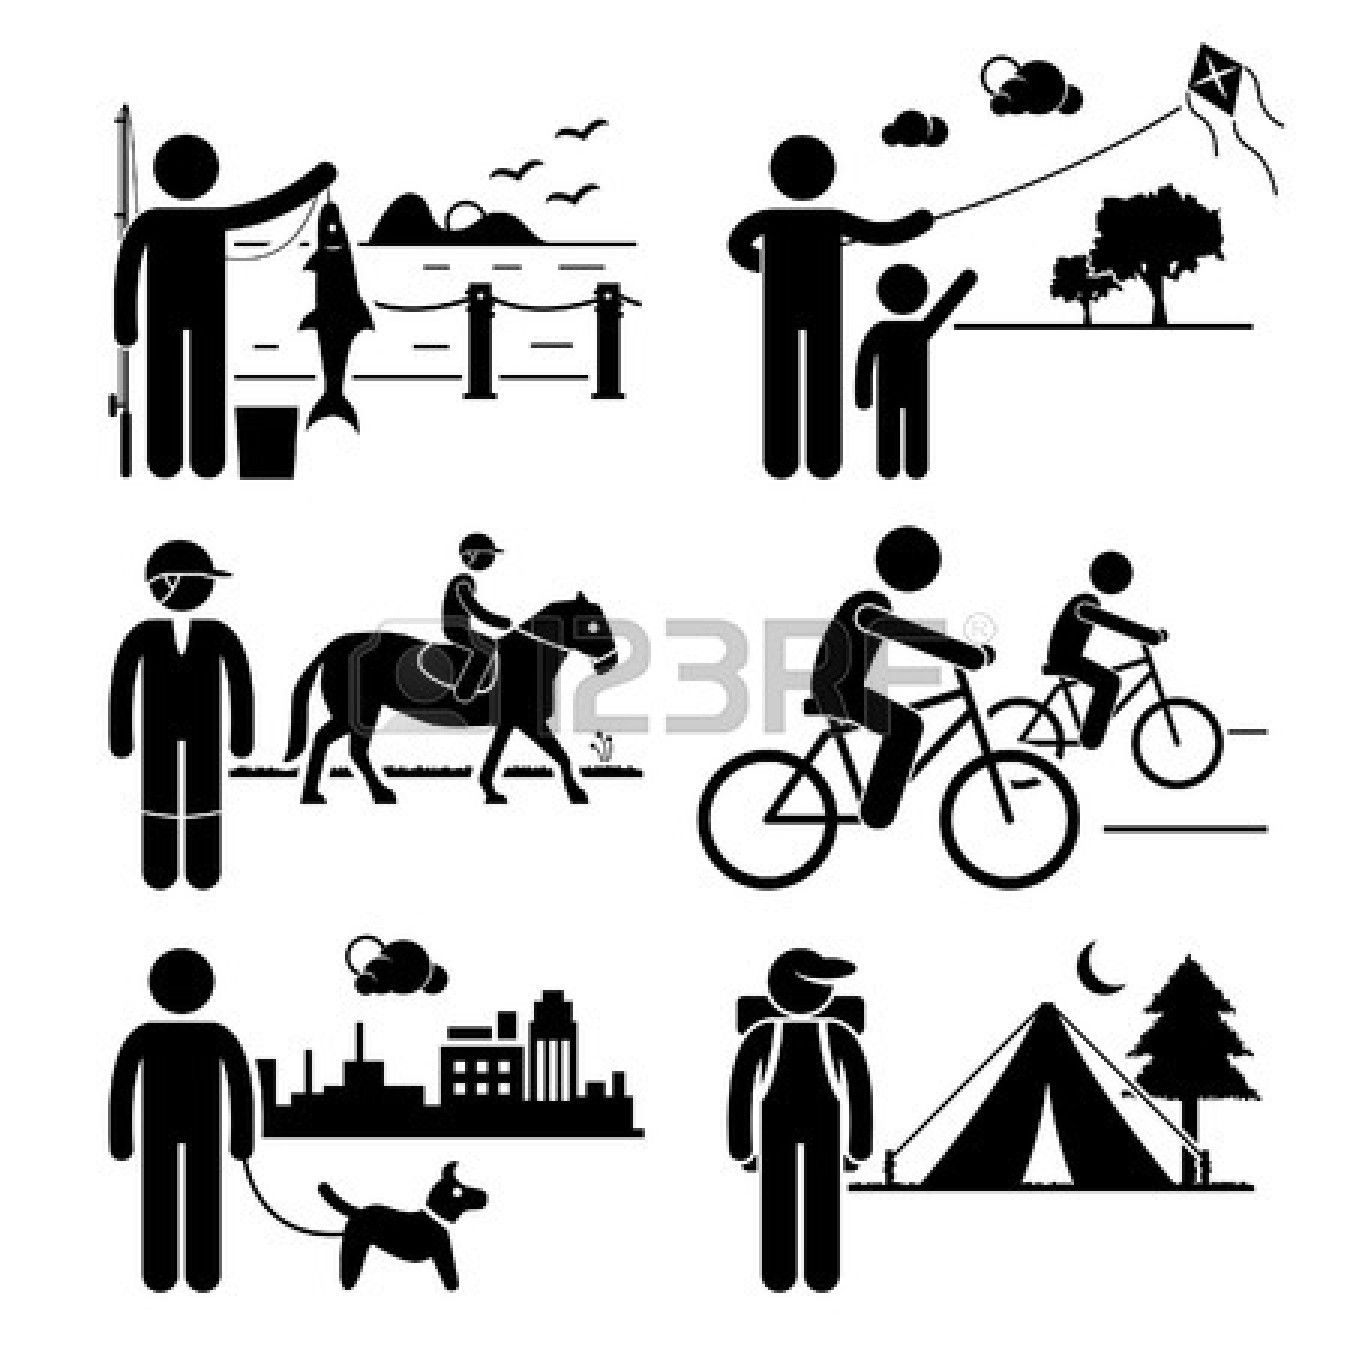 Recreational outdoor leisure activities. Campfire clipart stick figure